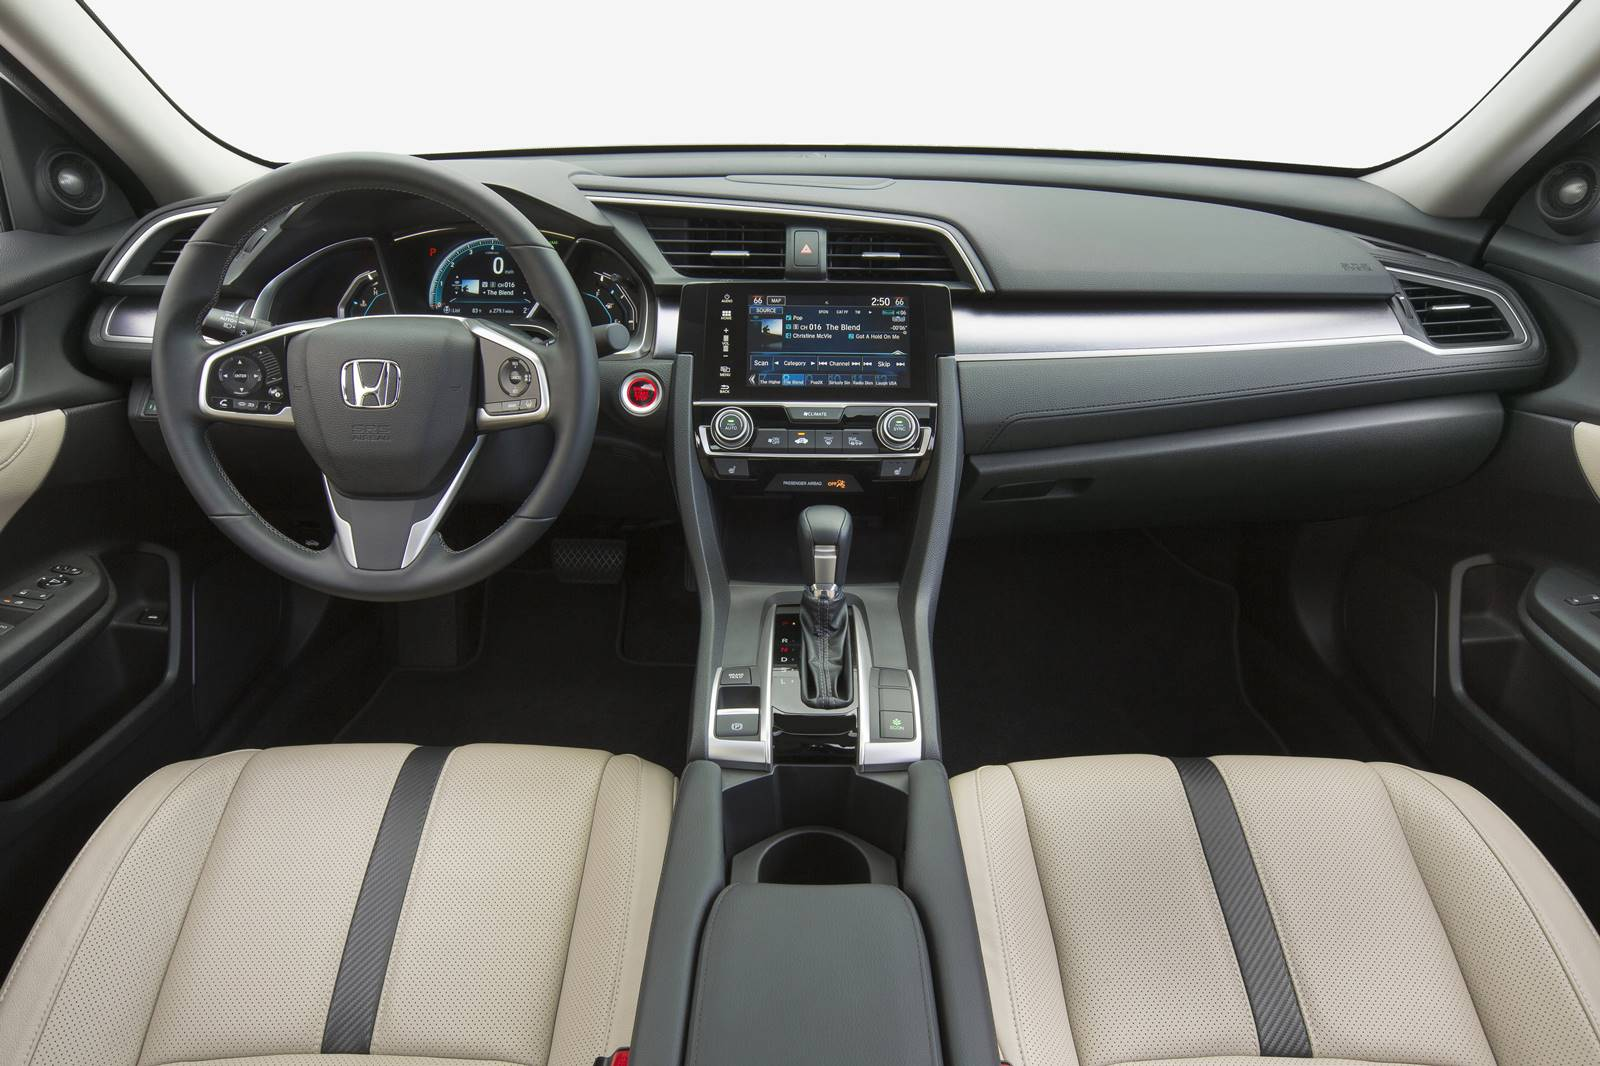 Honda Civic 2016 - consumo